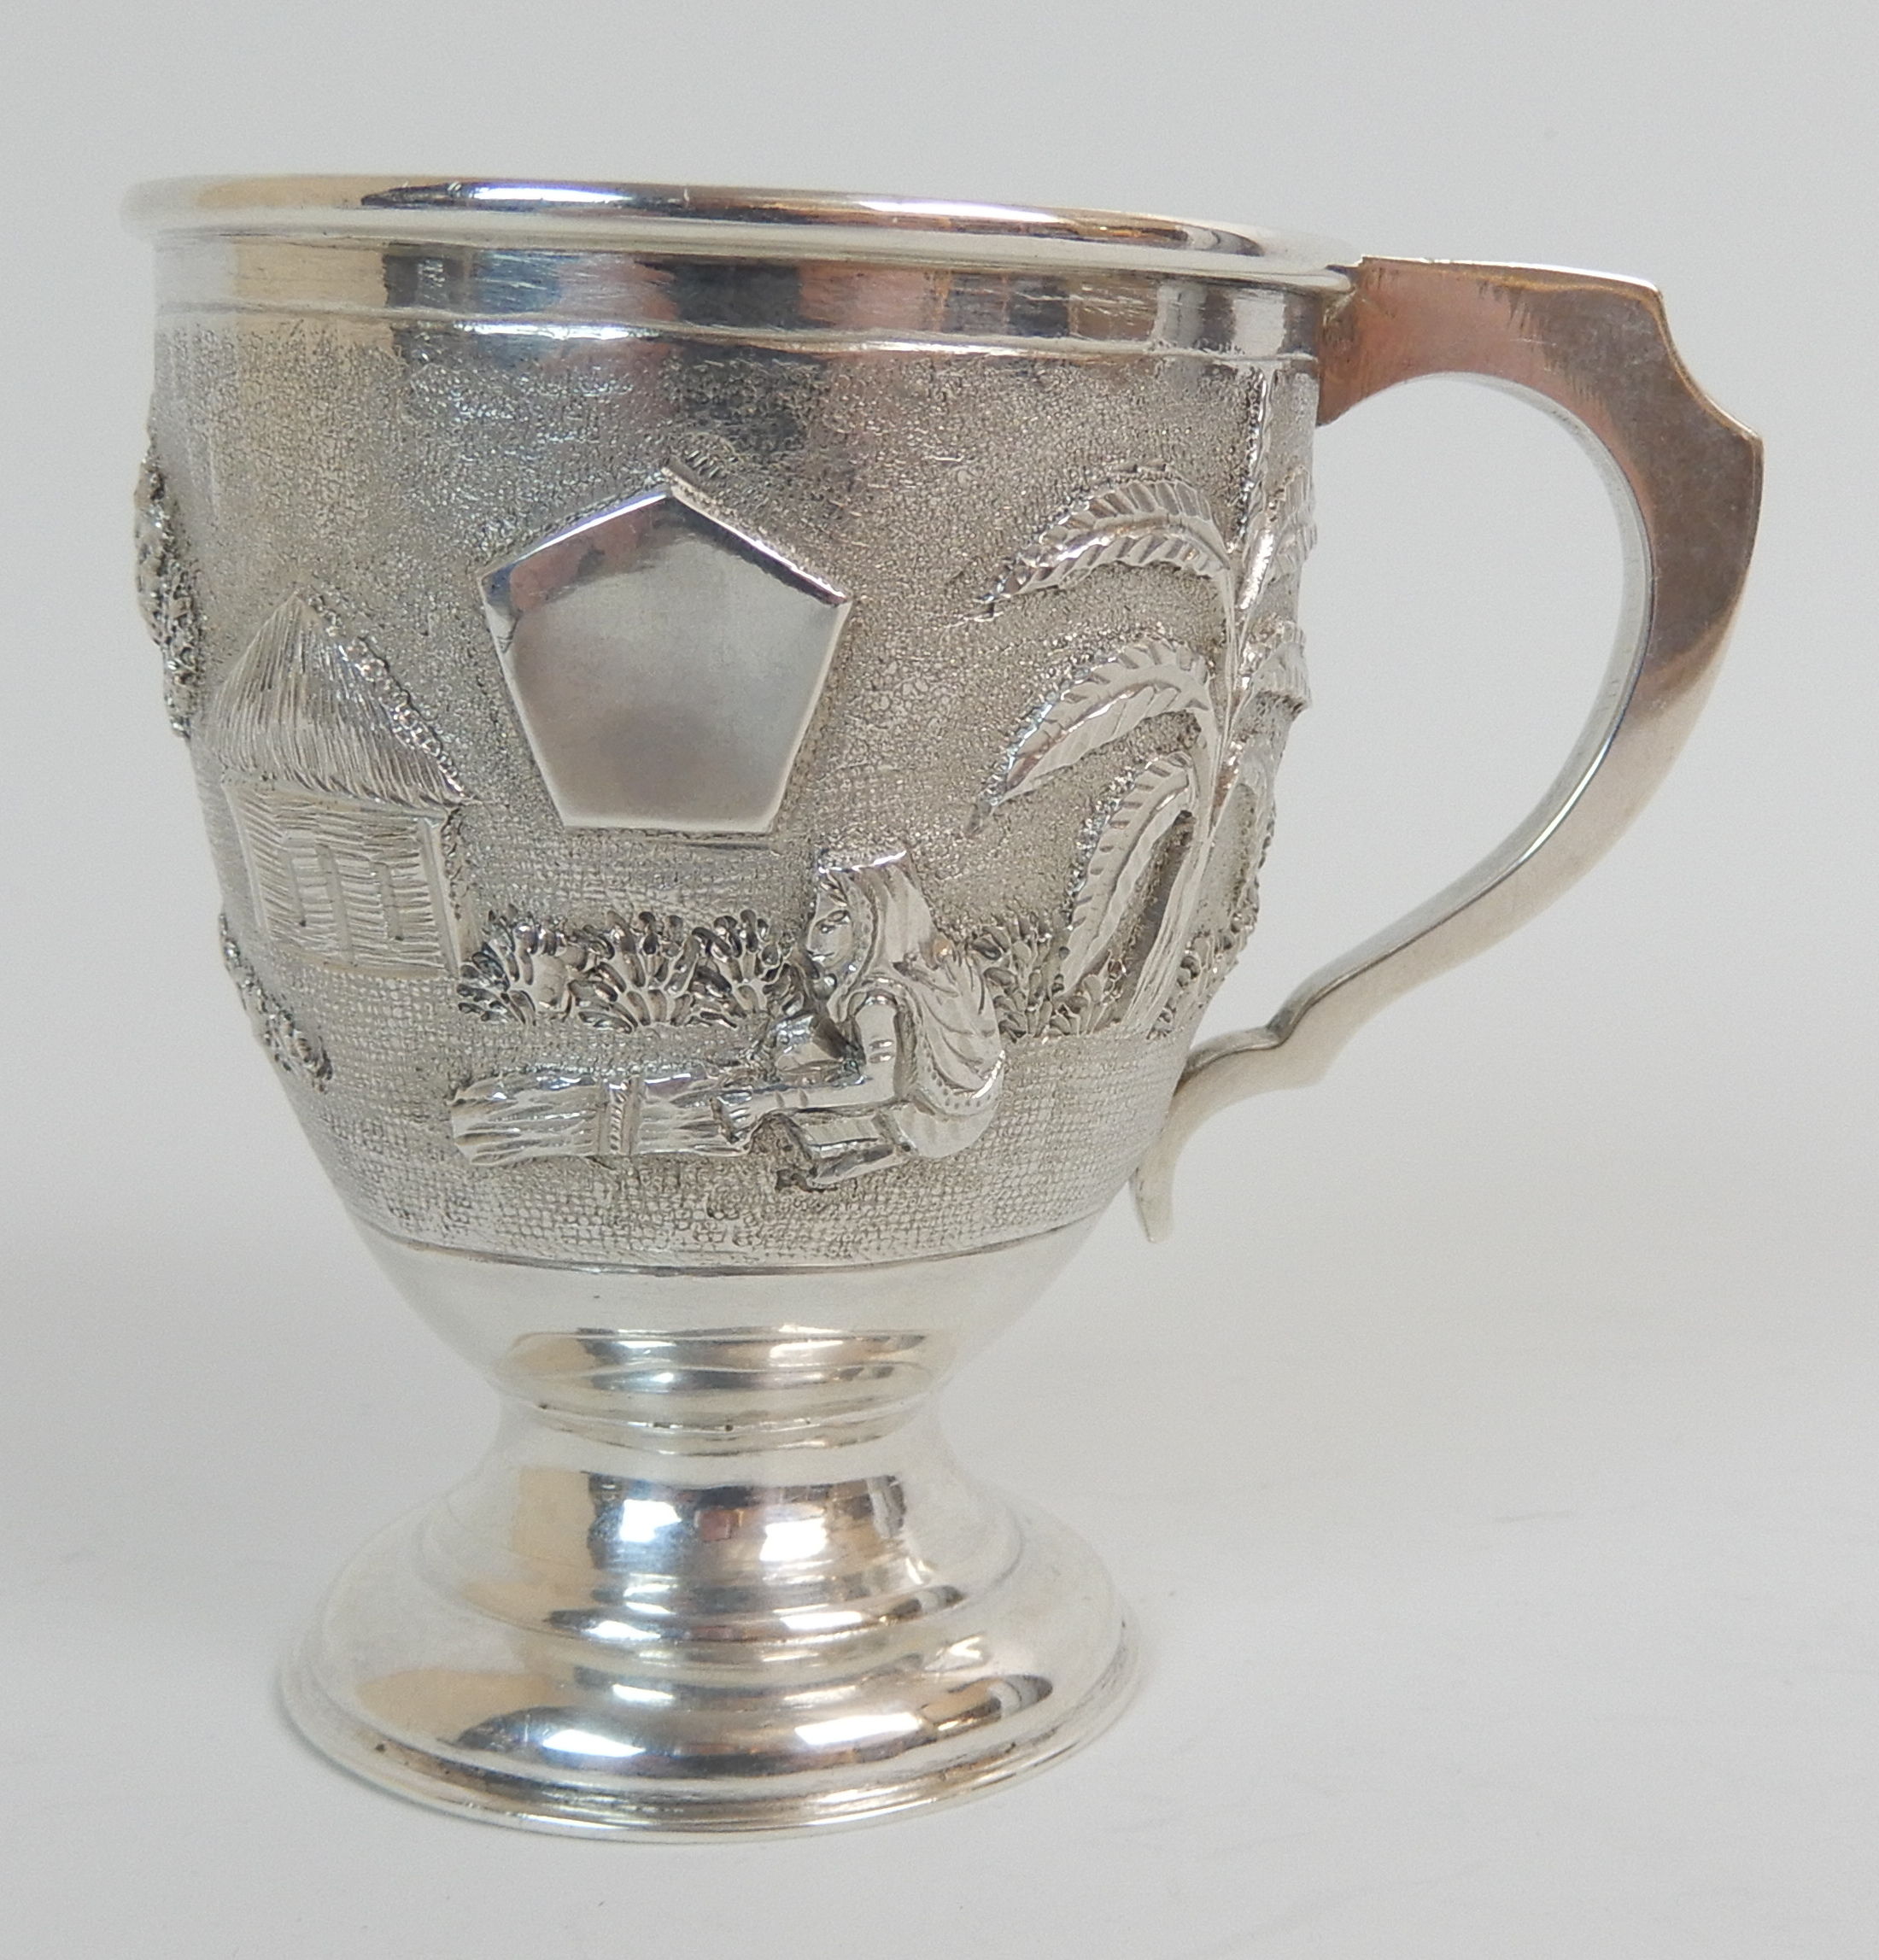 Lot 136 - A BURMESE EXPORT SILVER CHRISTENING MUG marked sterling silver, of tapering cylindrical form with